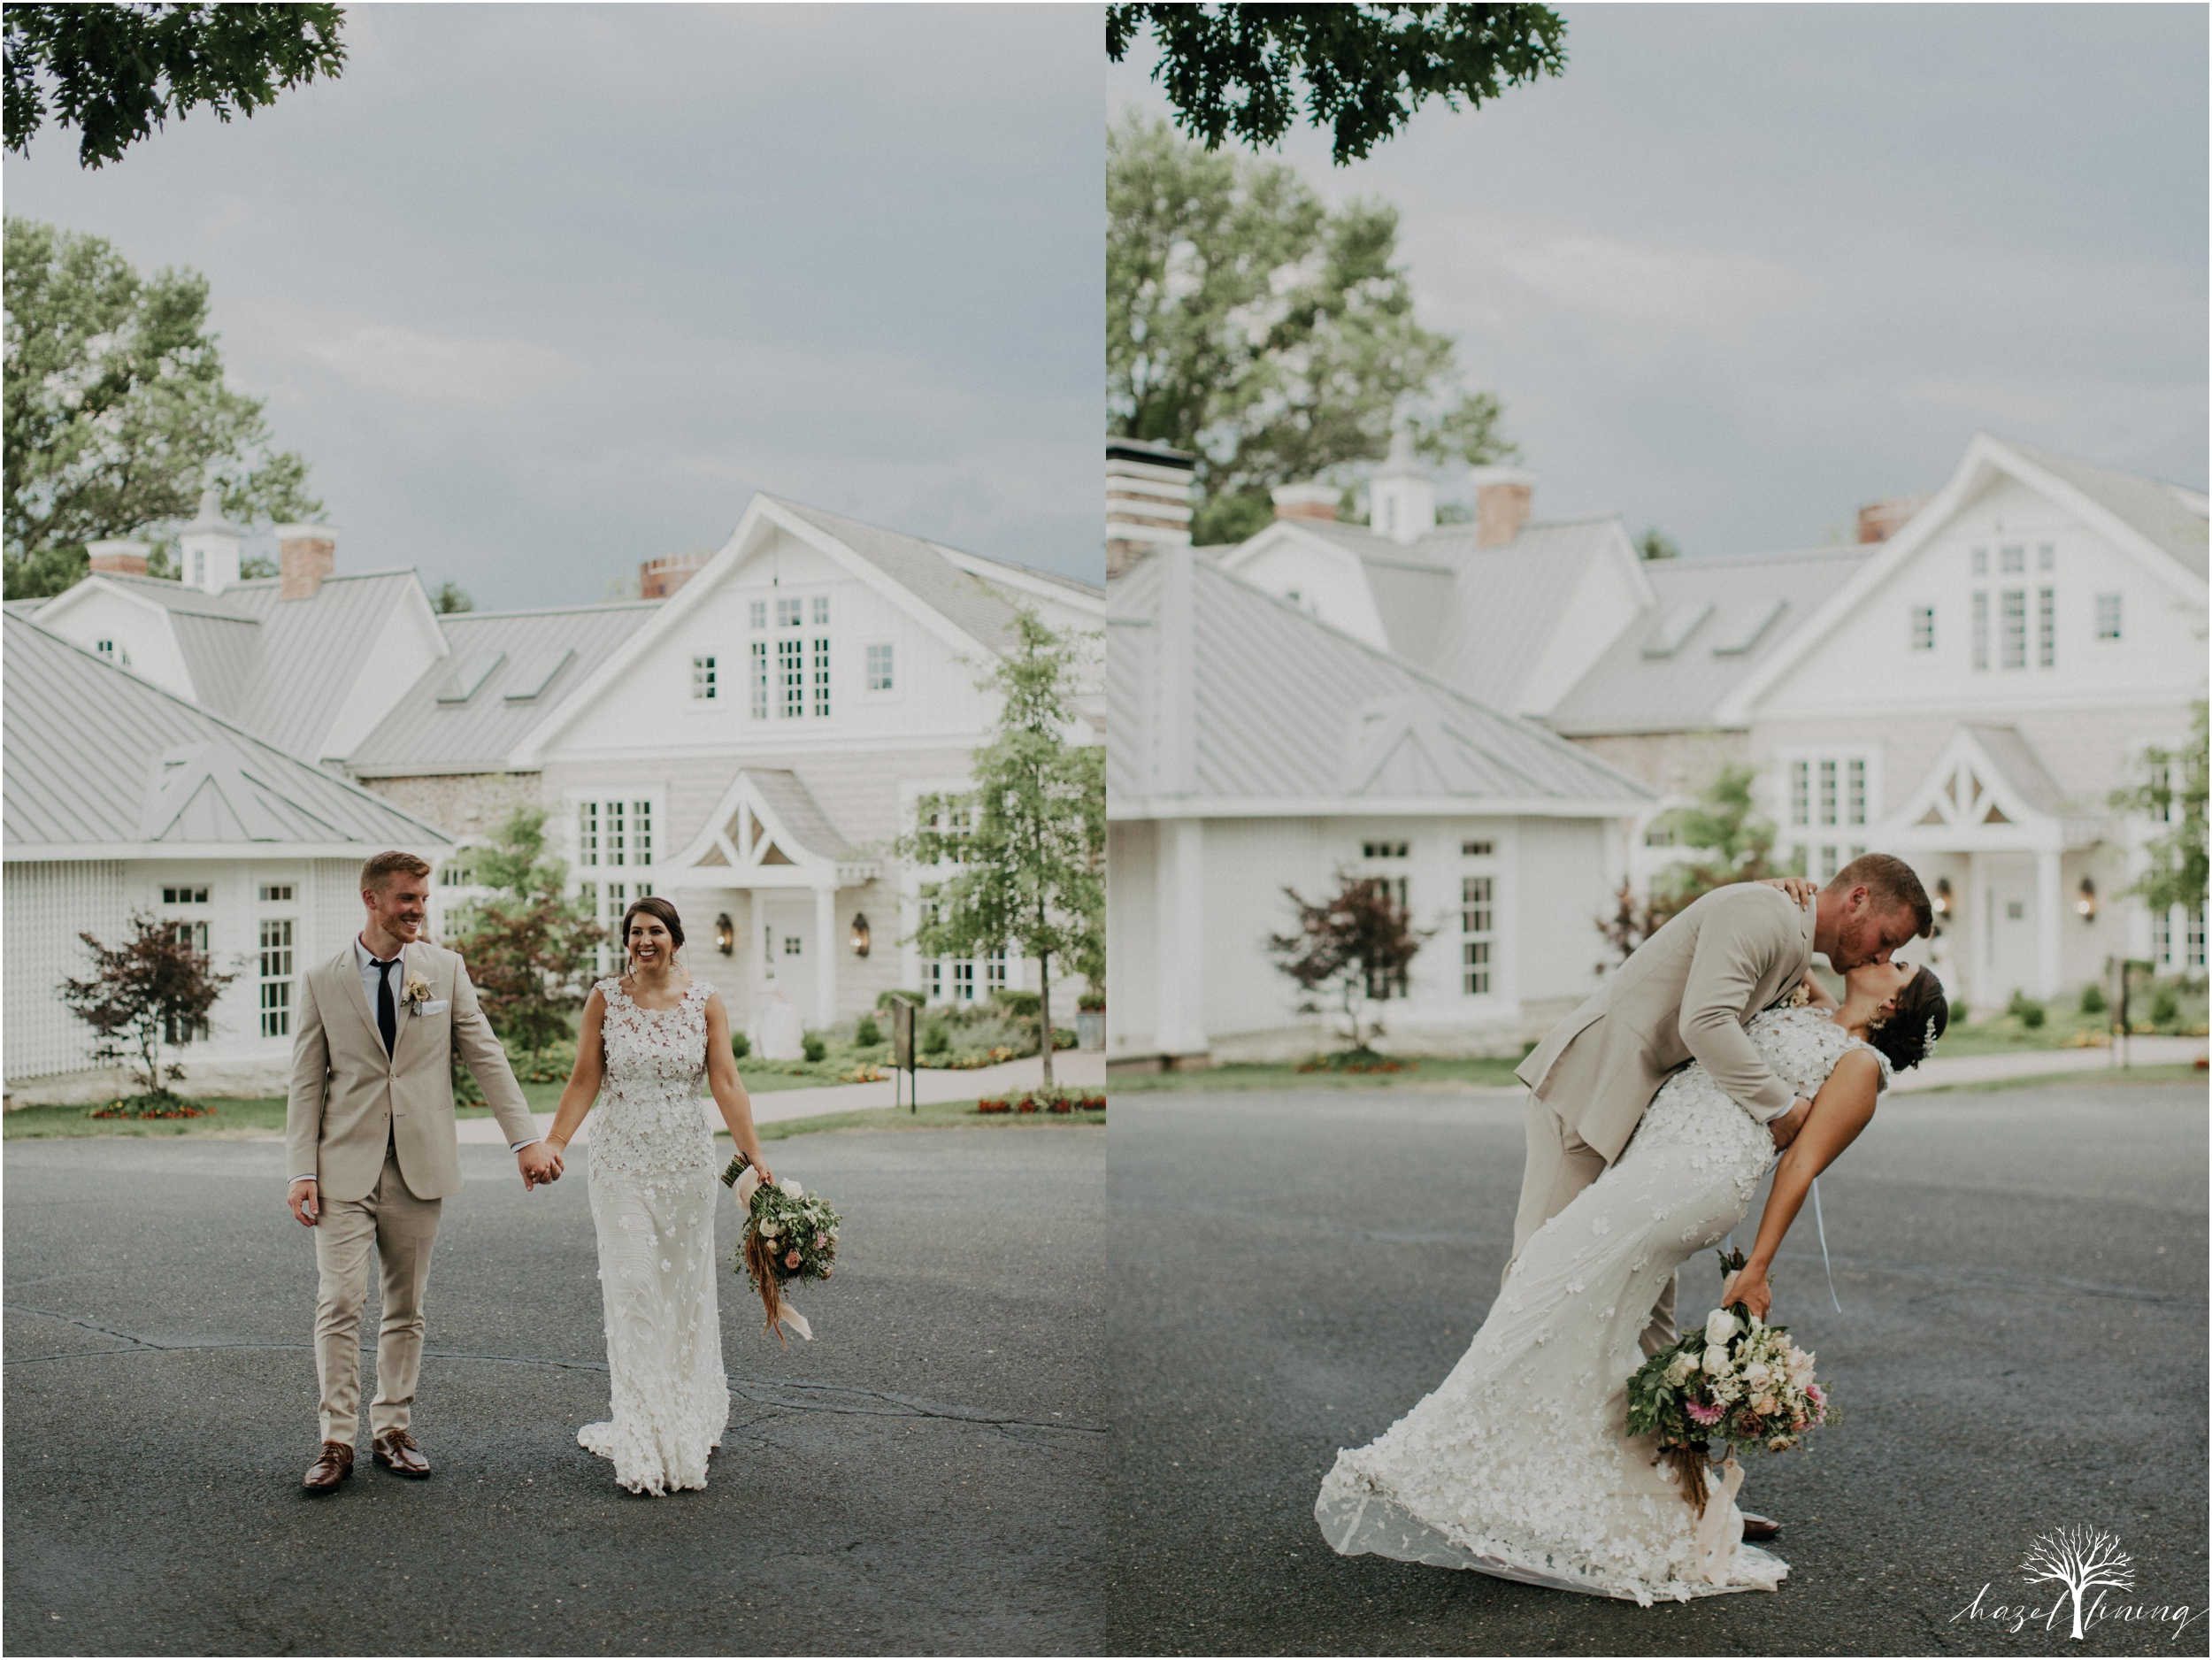 carl-chloe-the-ryland-inn-whitehouse-station-new-jersey-styled-squad-hazel-lining-photography-destination-elopement-wedding-engagement-photography_0025.jpg